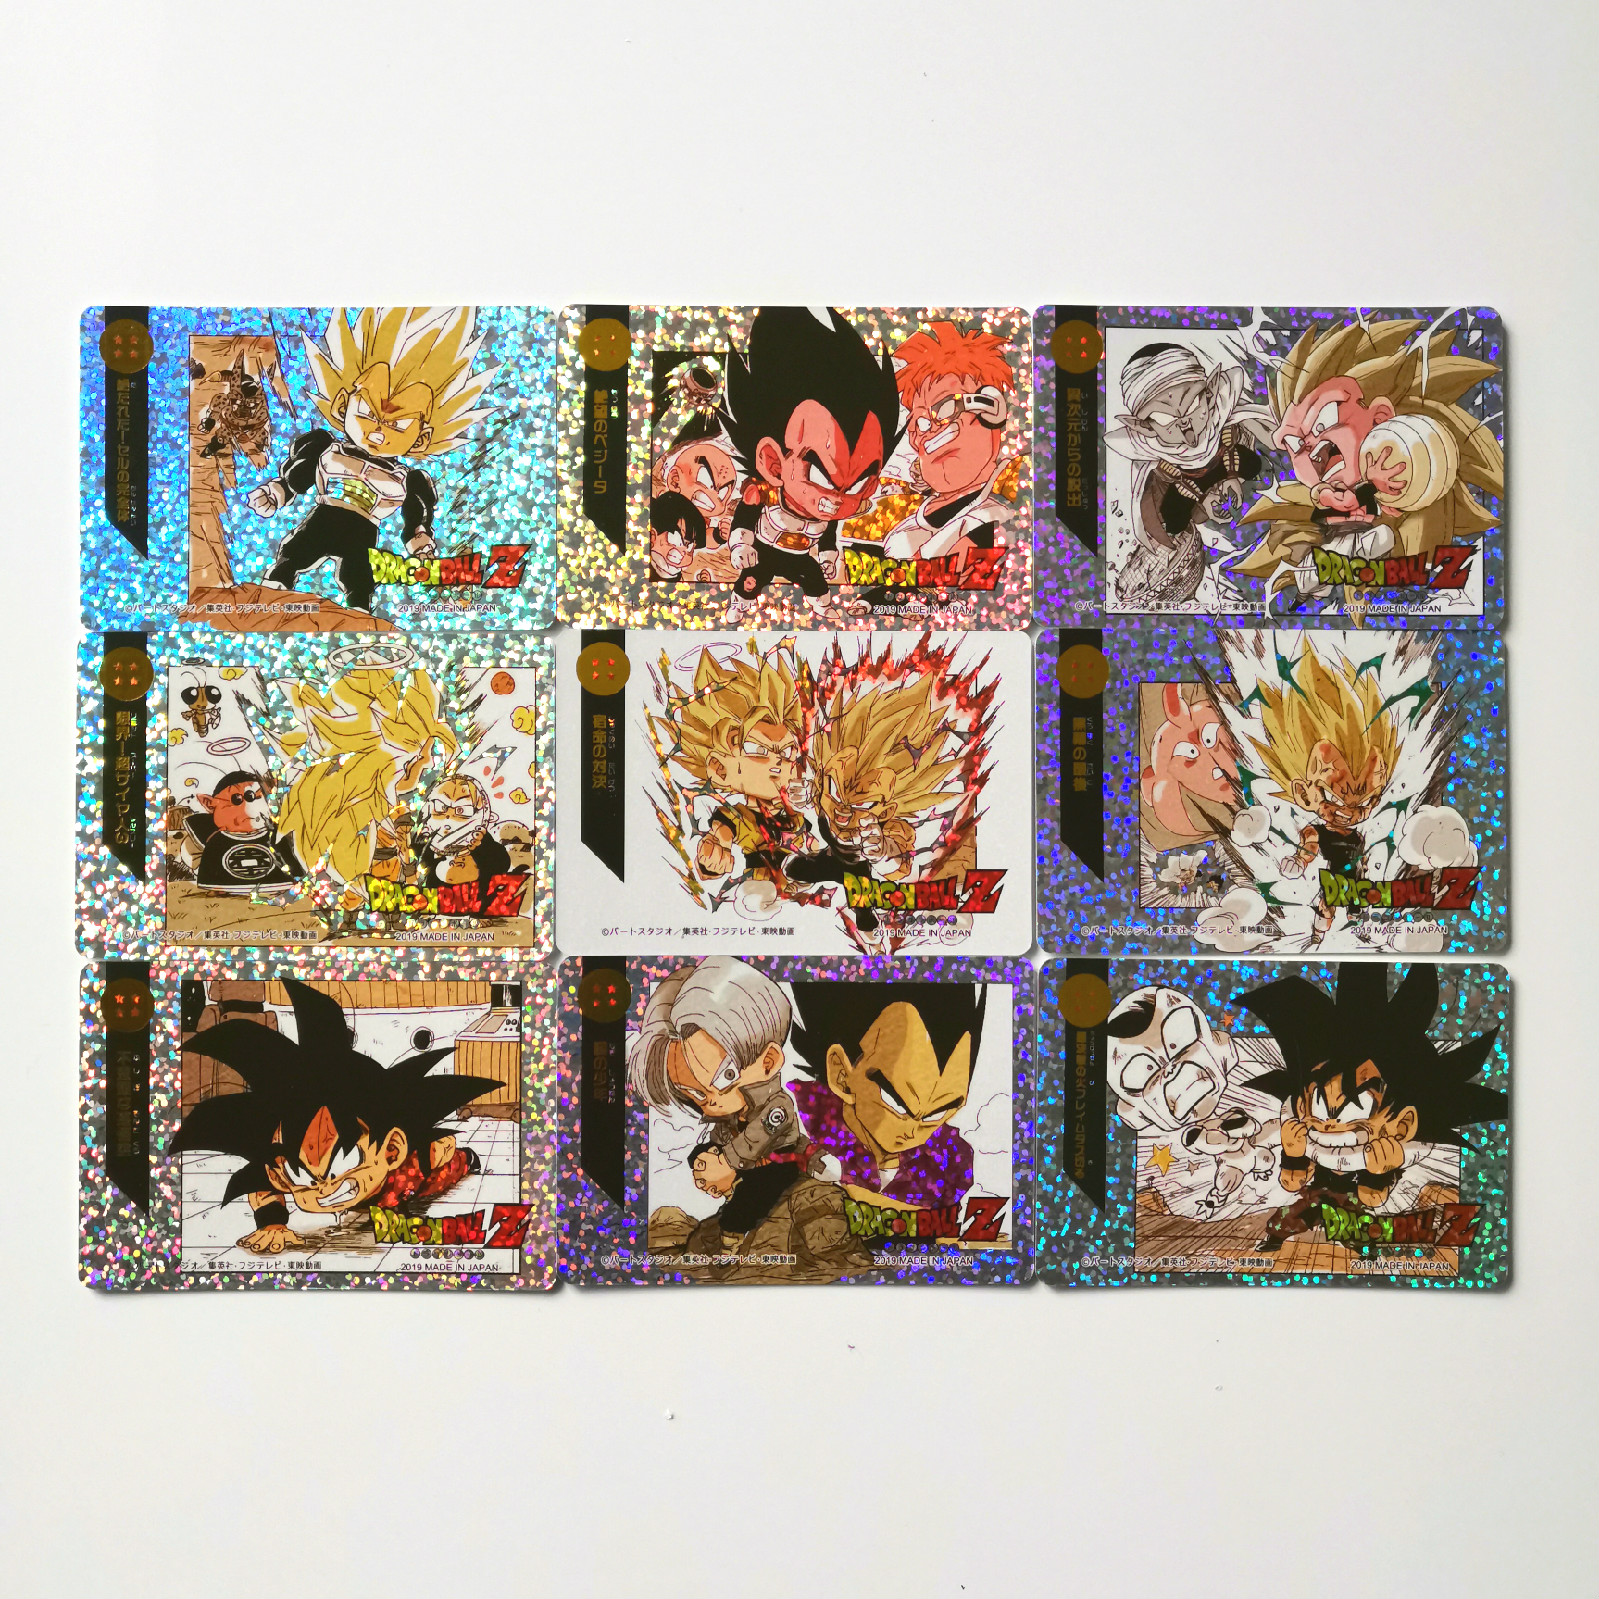 9pcs/set Super Dragon Ball Z Q Heroes Battle Card Ultra Instinct Goku Vegeta Game Collection Cards